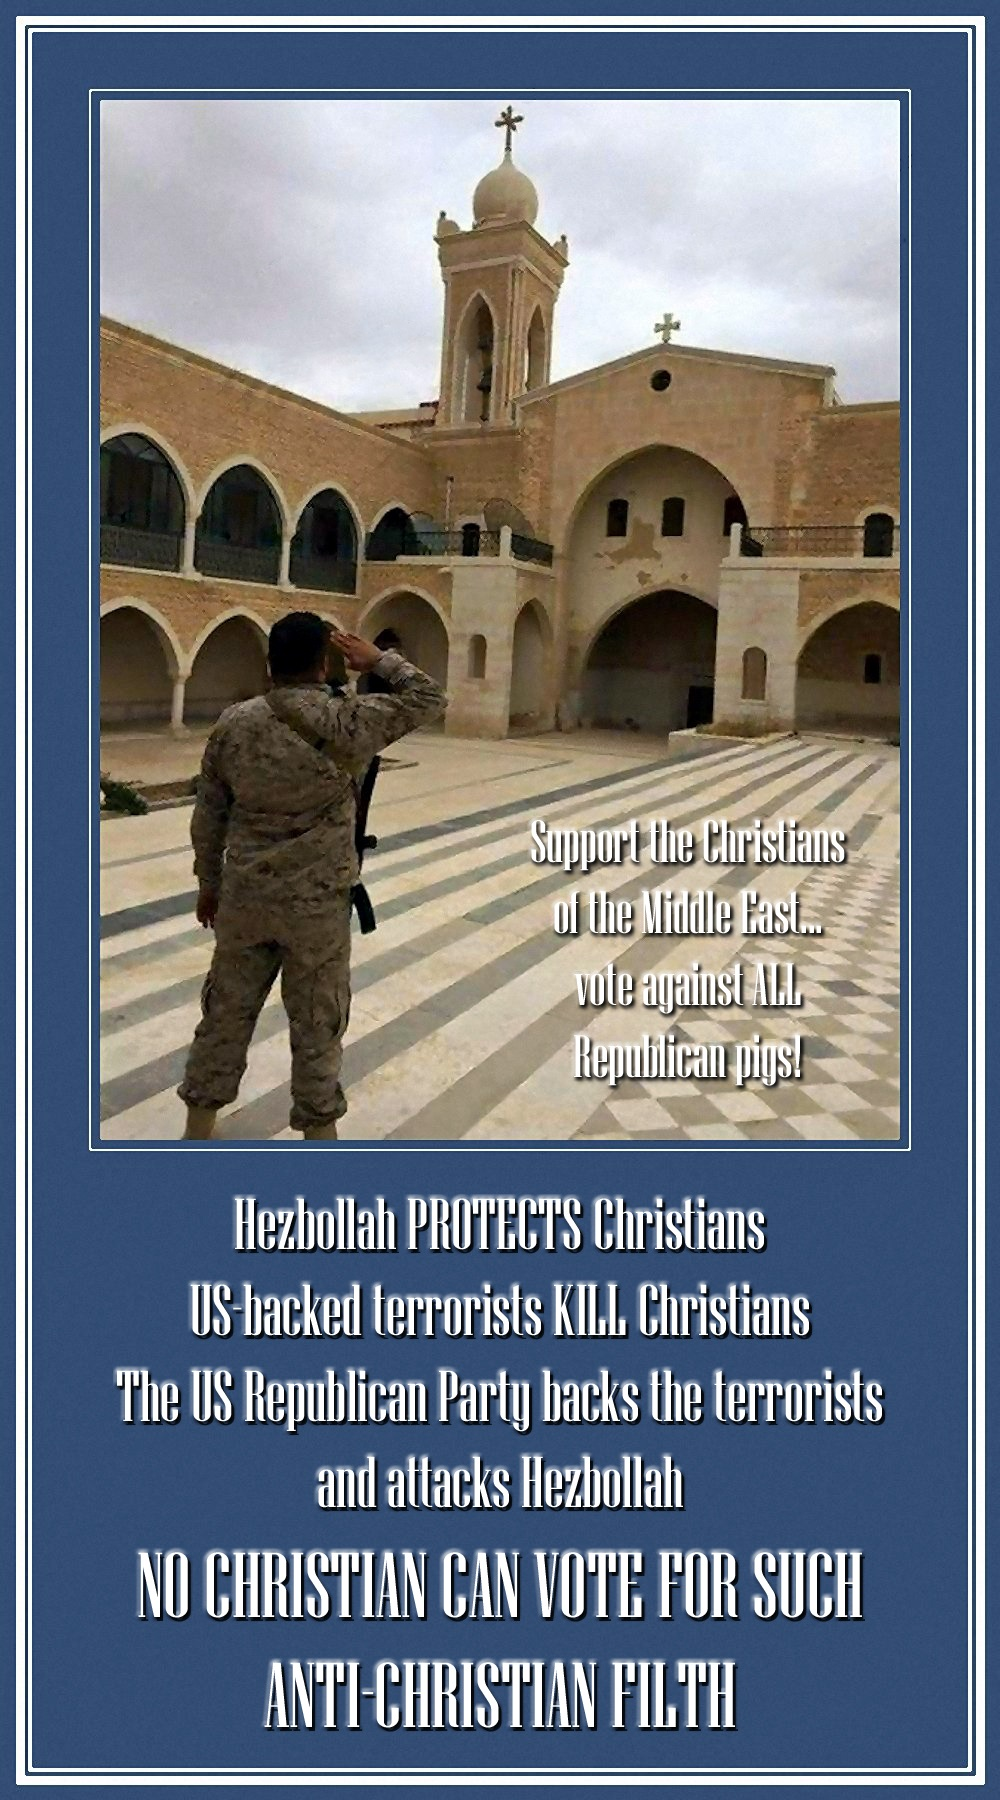 00 hezbollah christian church 131215